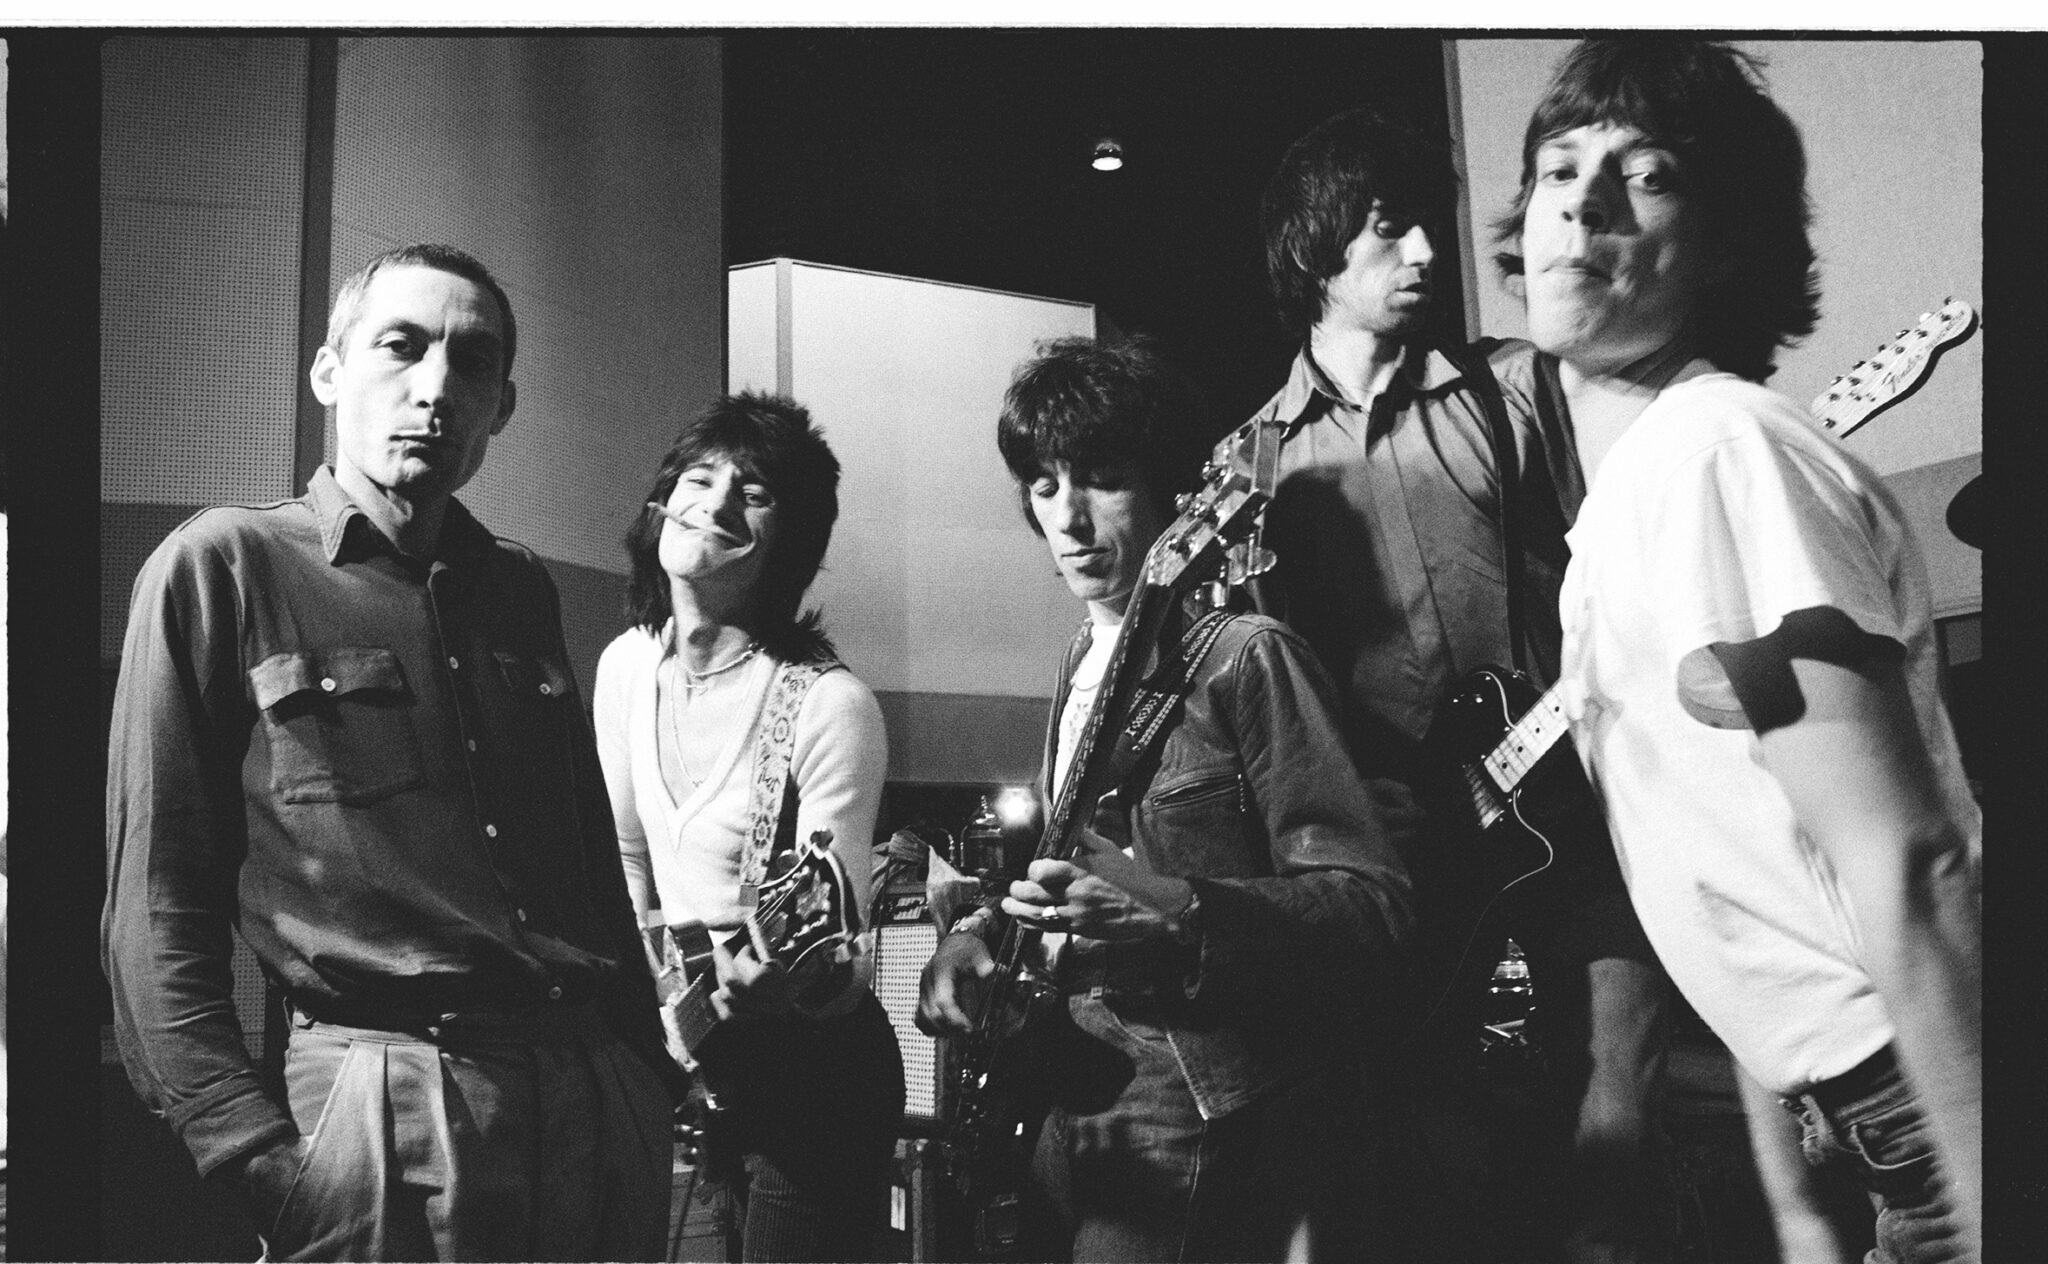 Charlie Watts: The Beat Goes Silent